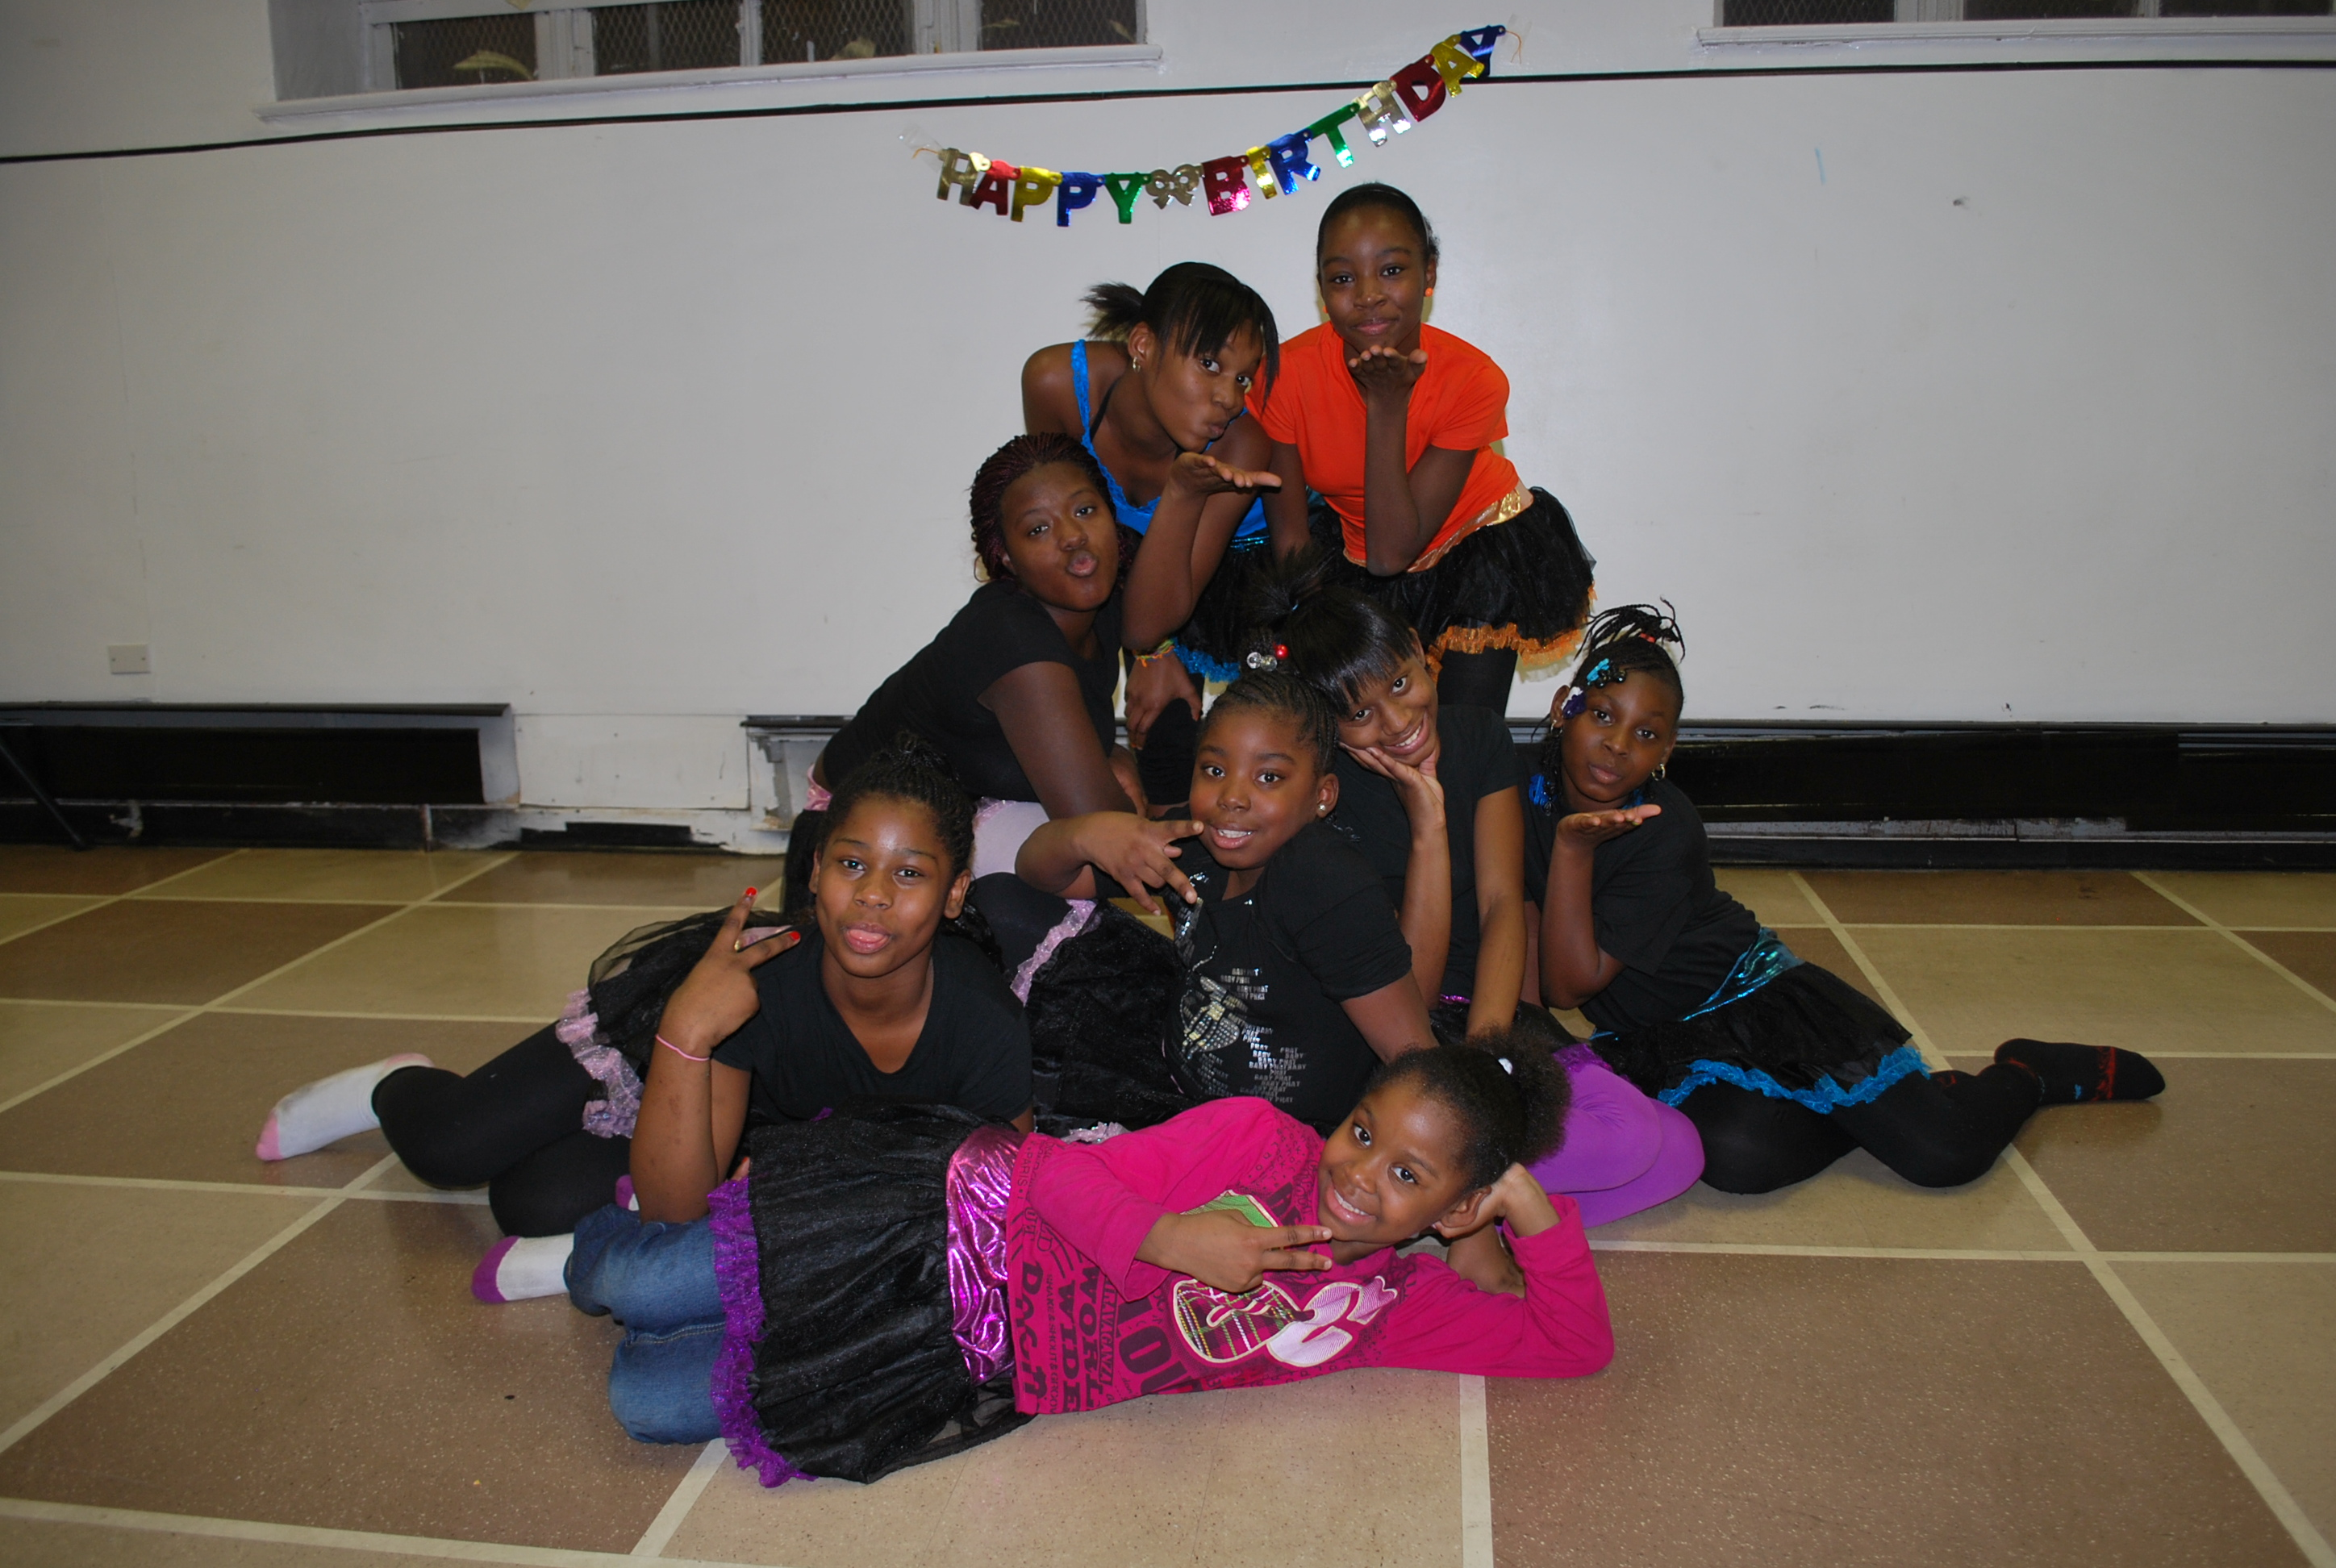 The Final Explosion dance troupe participated in the Nov 26th party. (Photo/Vee L. Harrison)